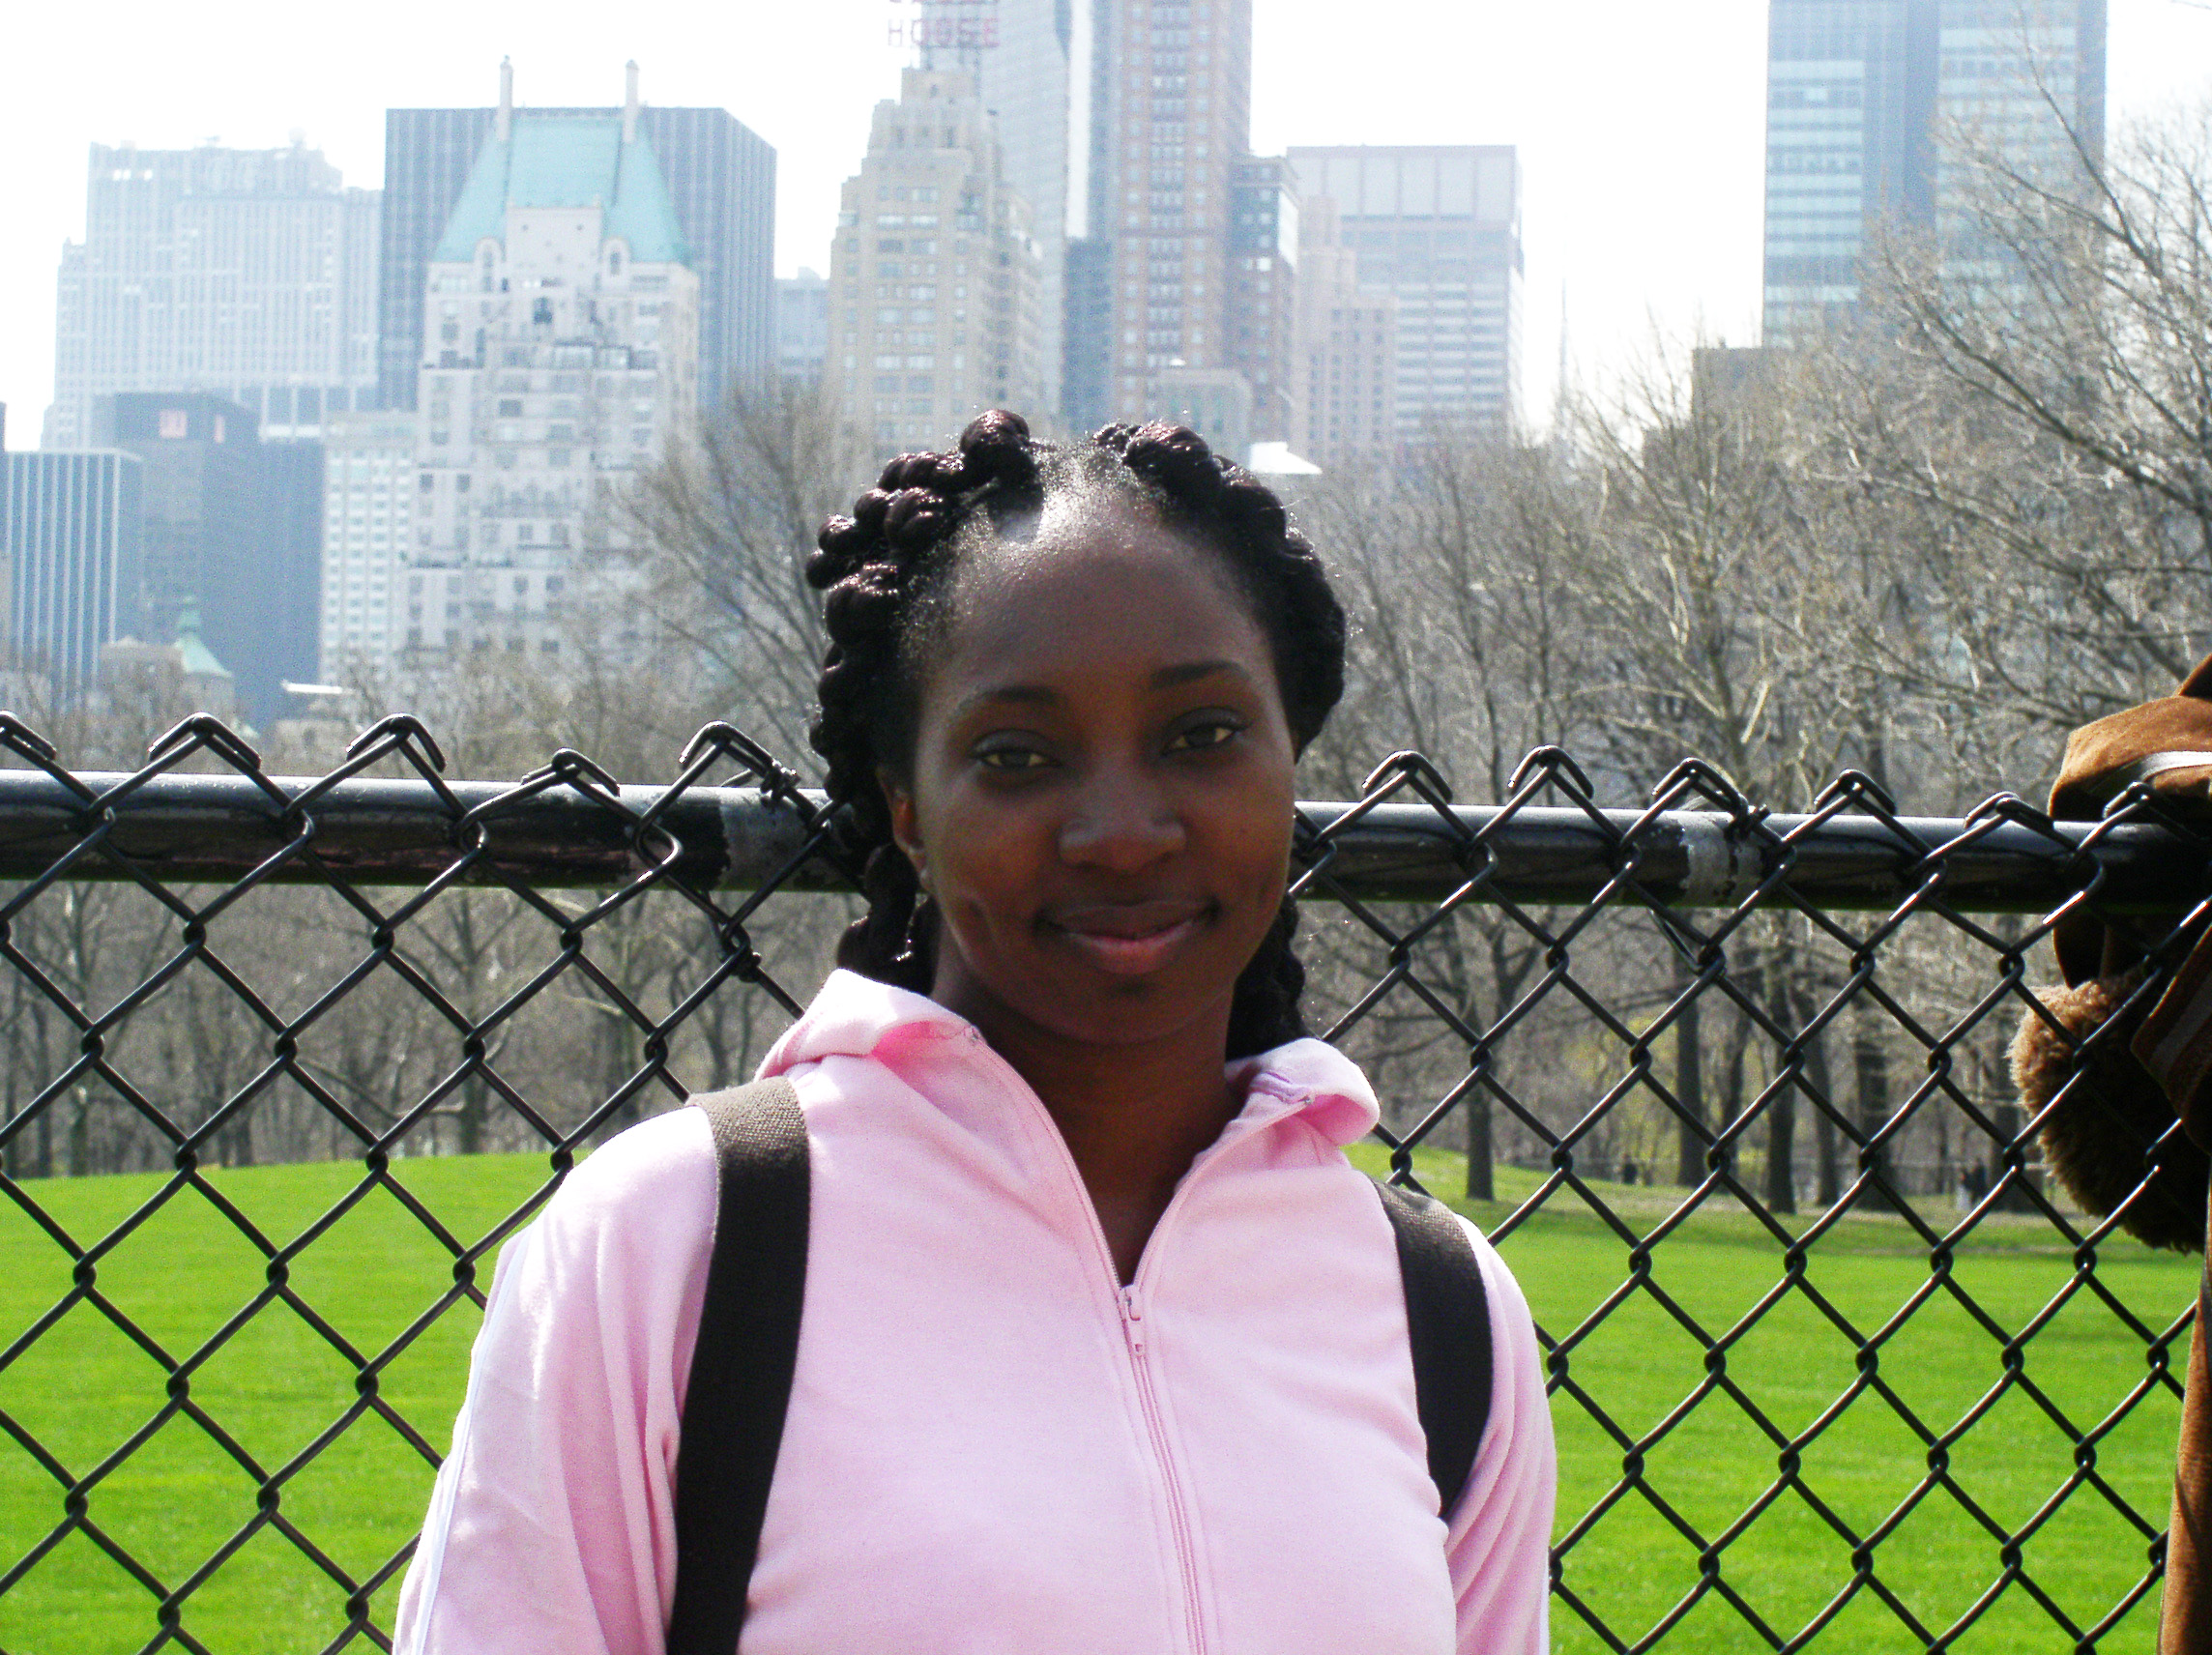 Wendy in NYC in 2004